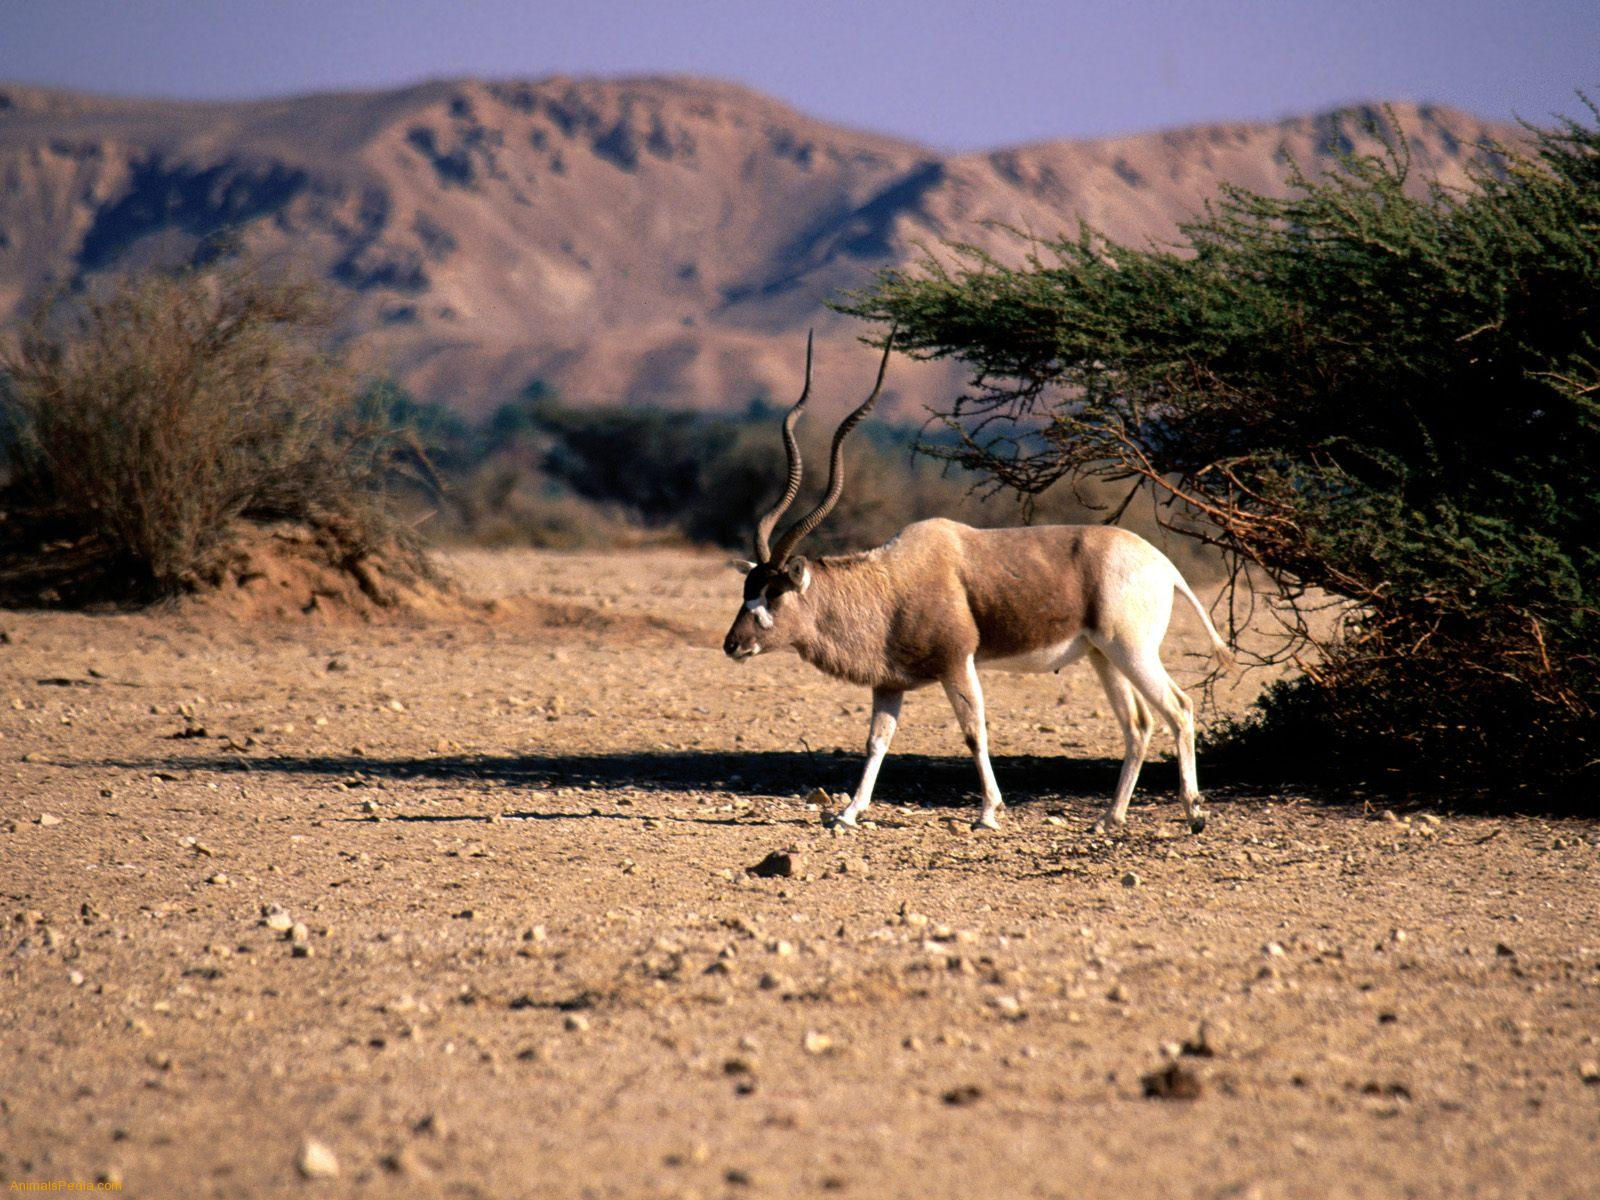 ... Animal list of Africa: Beautiful wildlife and dangerous wild animals